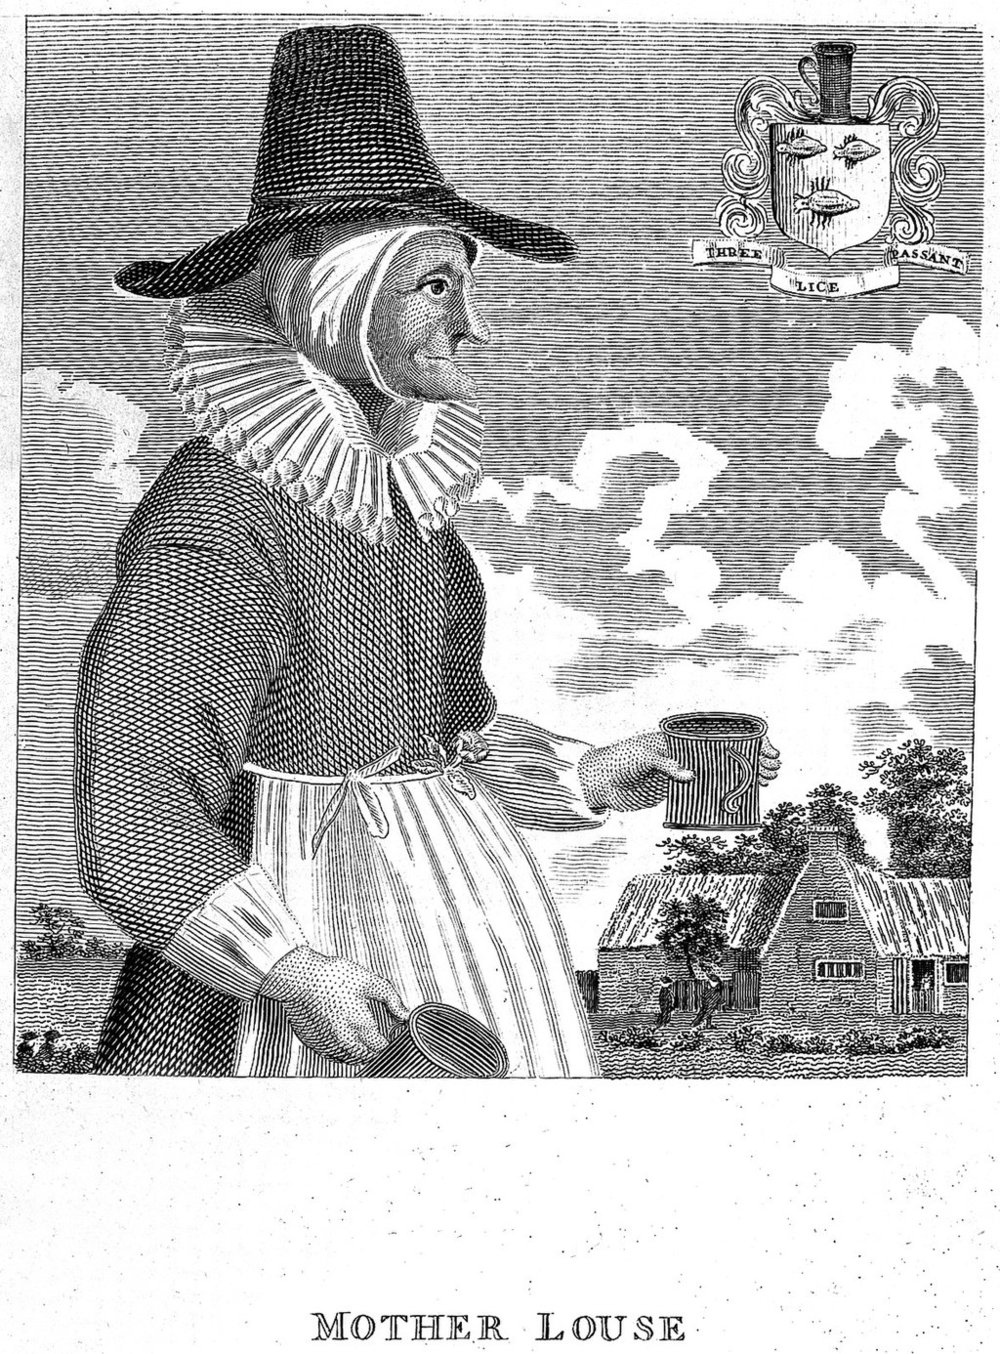 A seventeenth-century engraving of a dubious Alewife, Mother Louse, from Oxfordshire.  Courtesy of: Wellcome Library, London.  http://wellcomeimages.org  http://creativecommons.org/licenses/by/4.0/